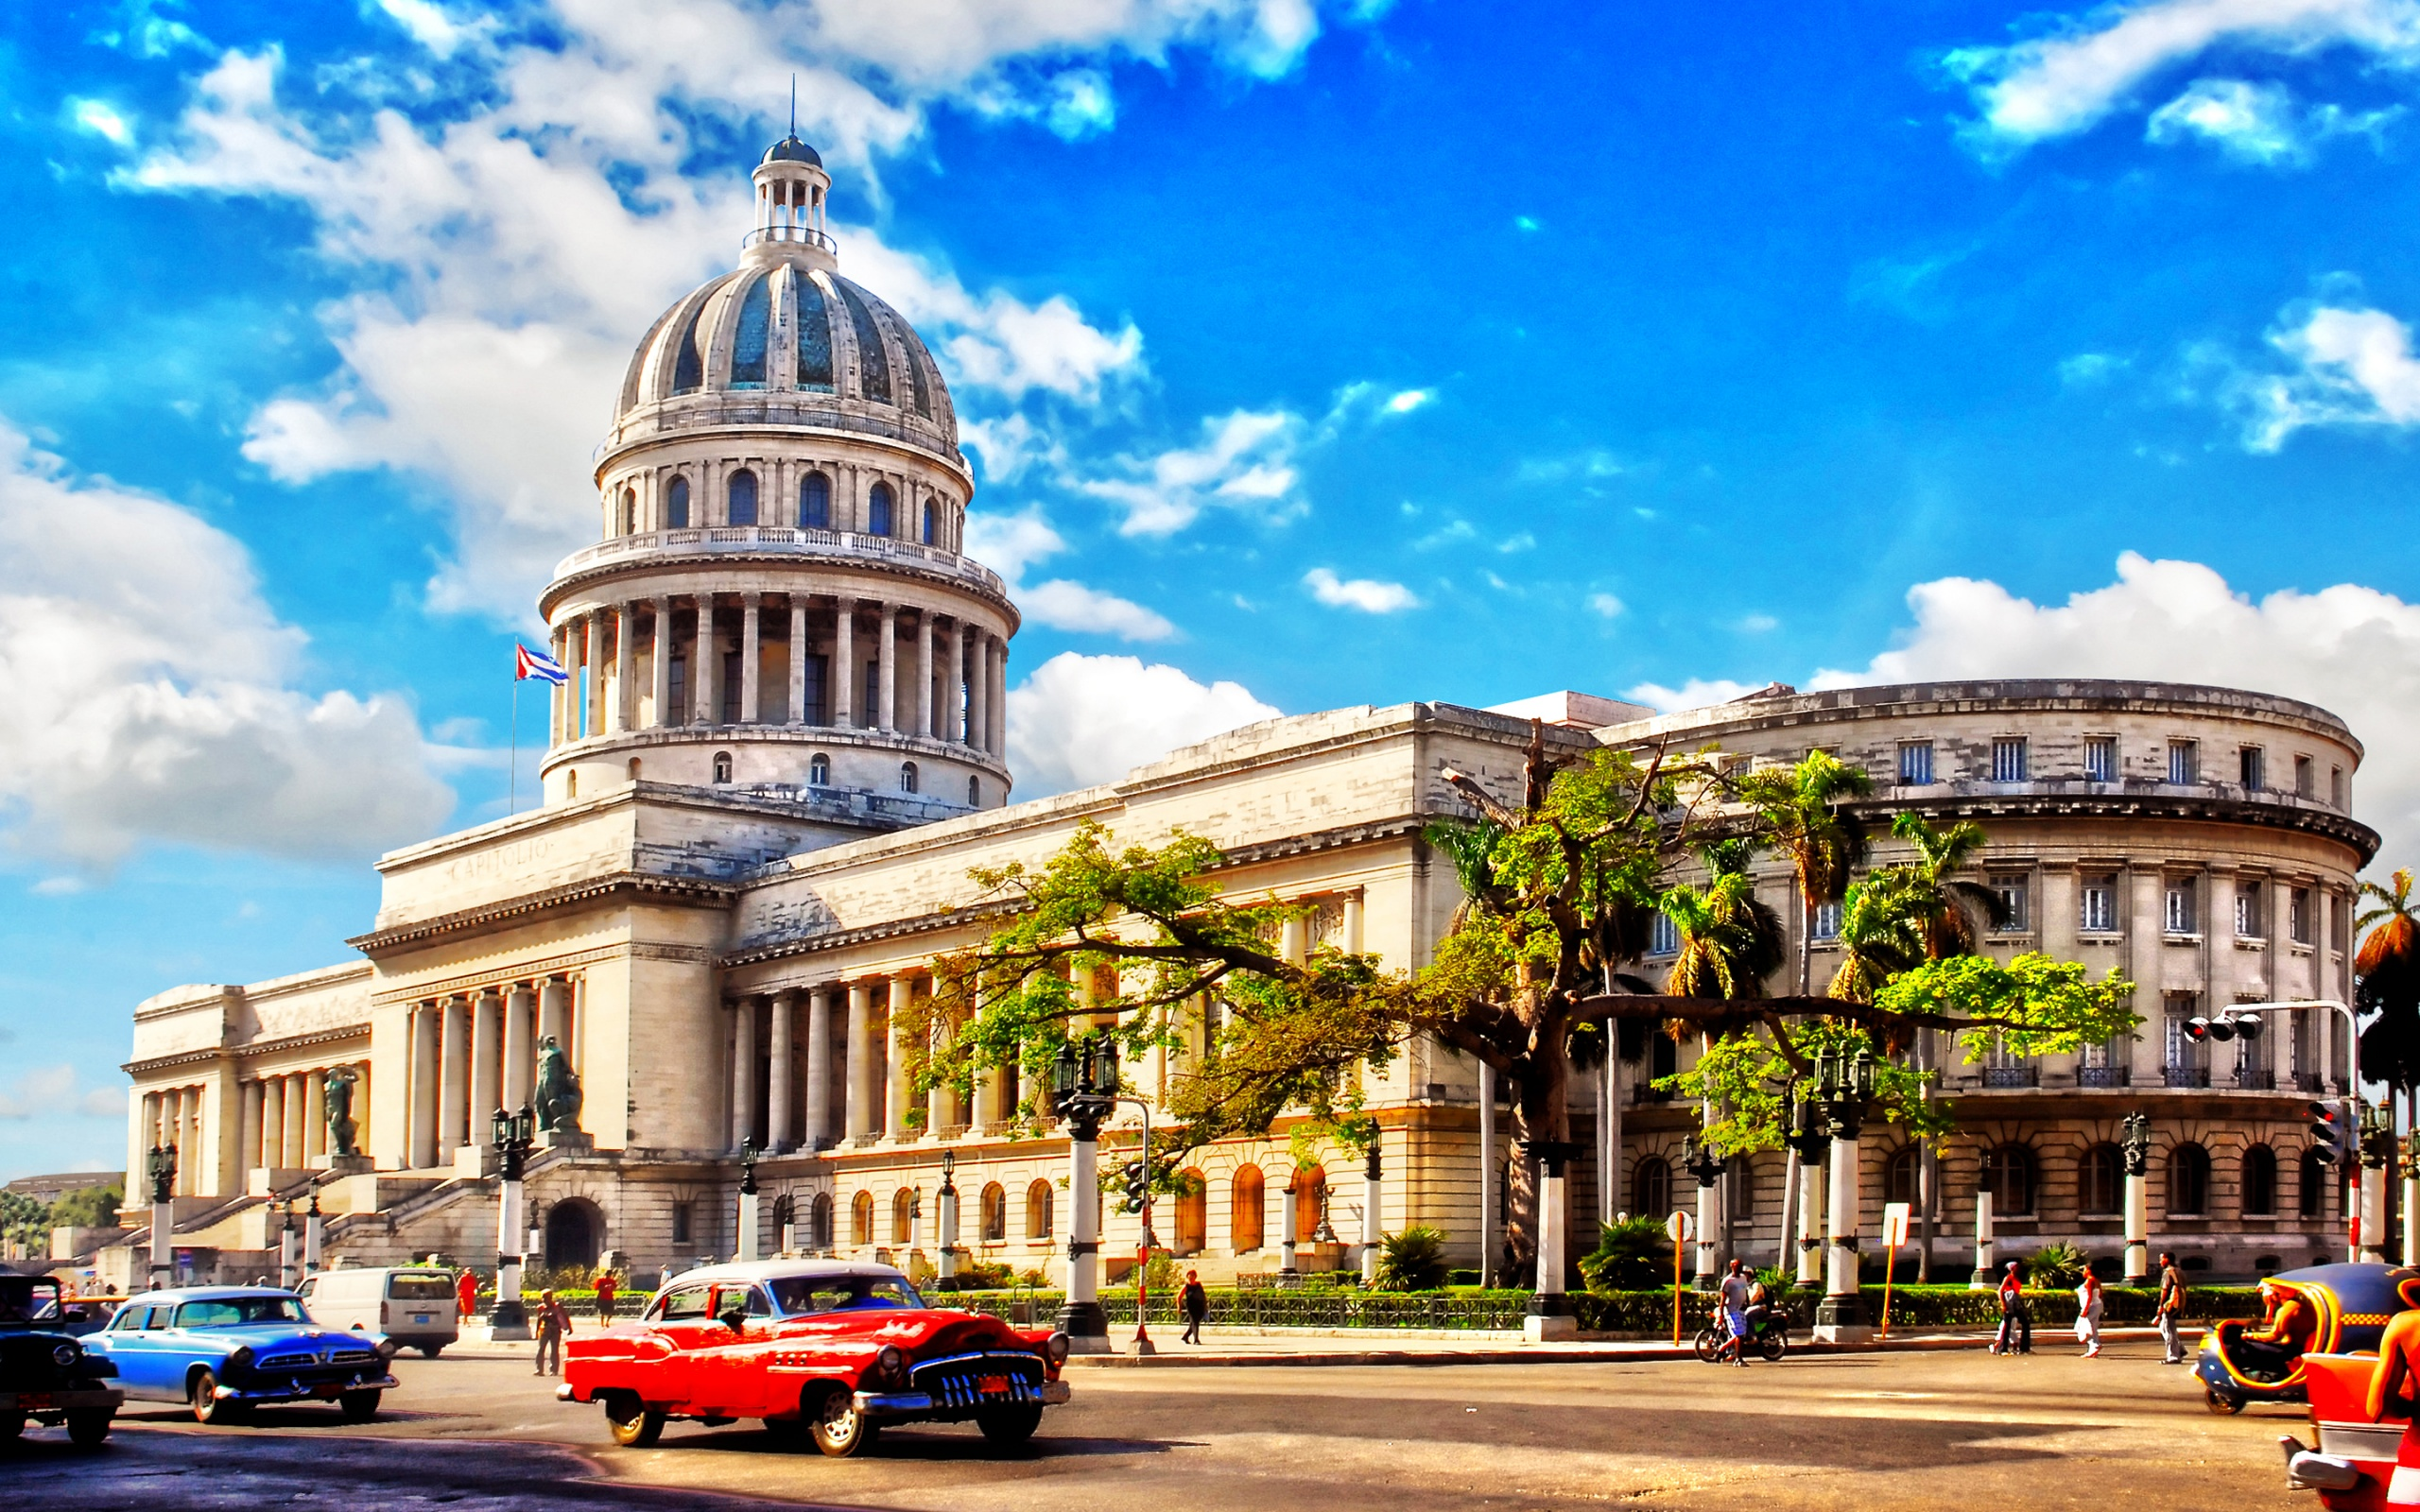 Tremendous yearning for change in Cuba means business opportunities